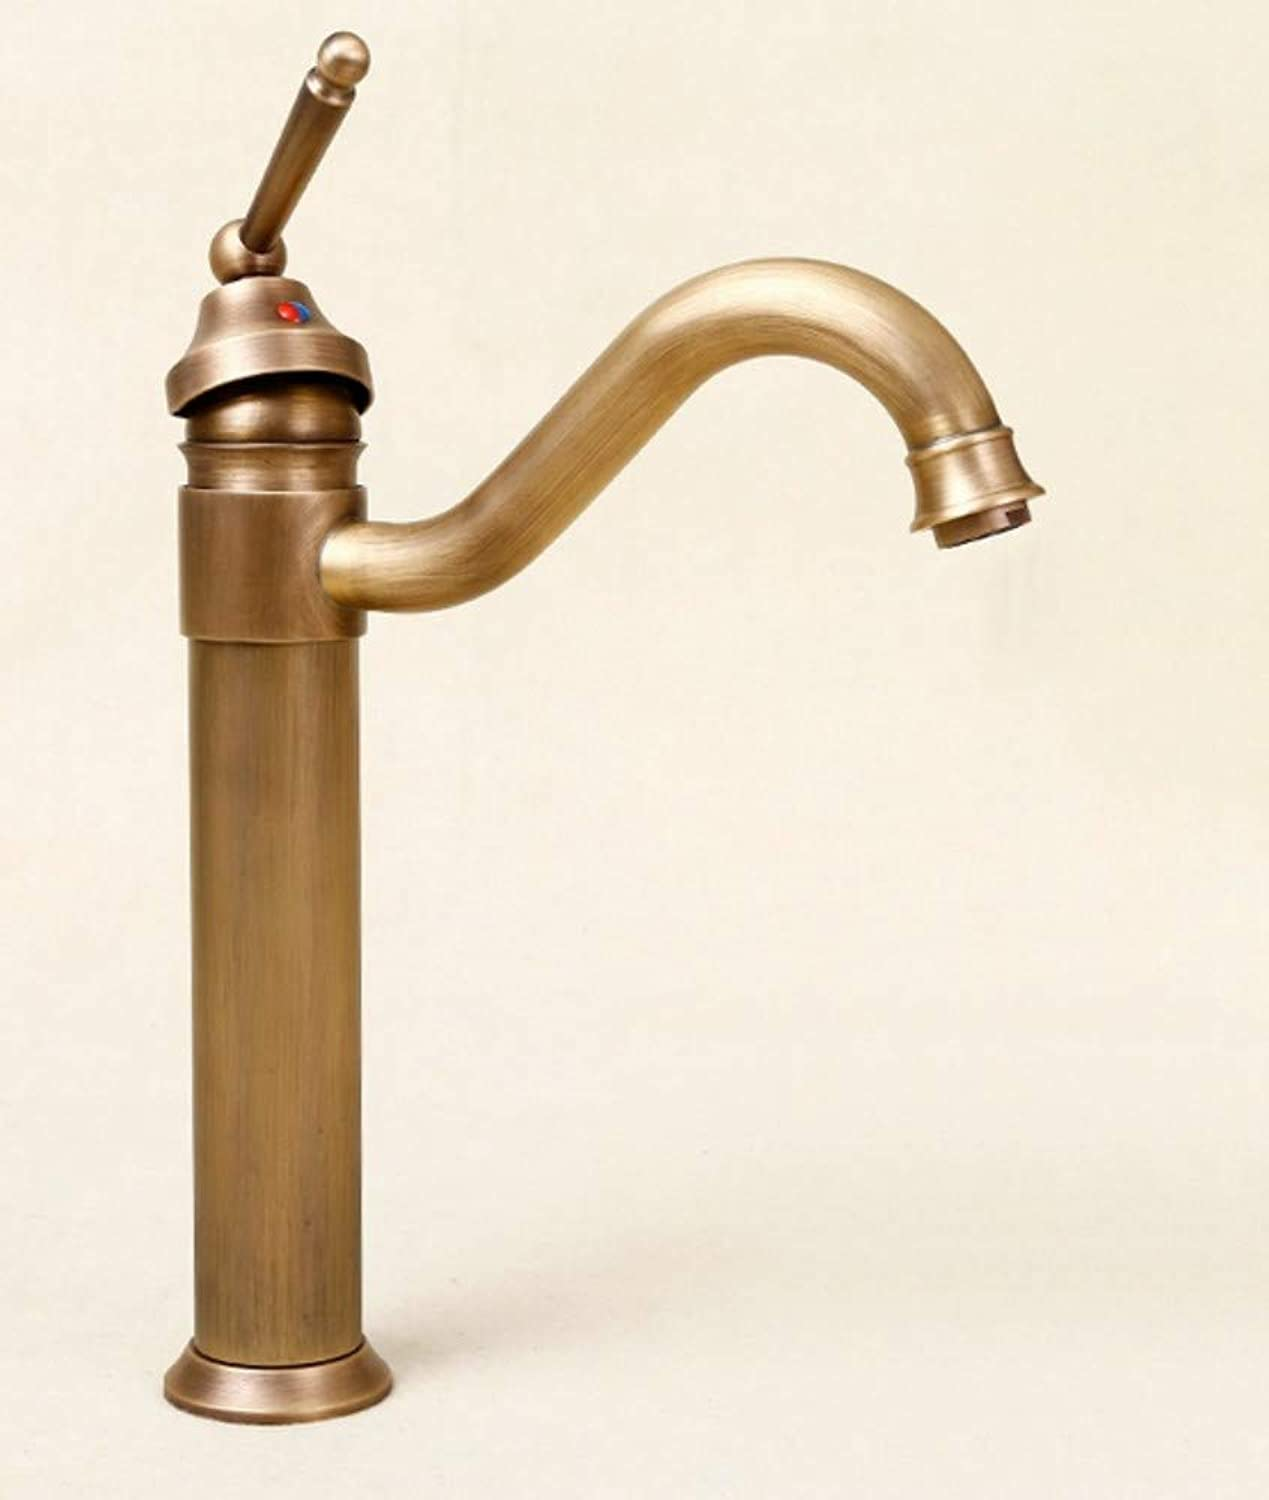 redOOY Antique art basin faucet plus high basin plus high hot and cold copper full of retro faucet kitchen tap